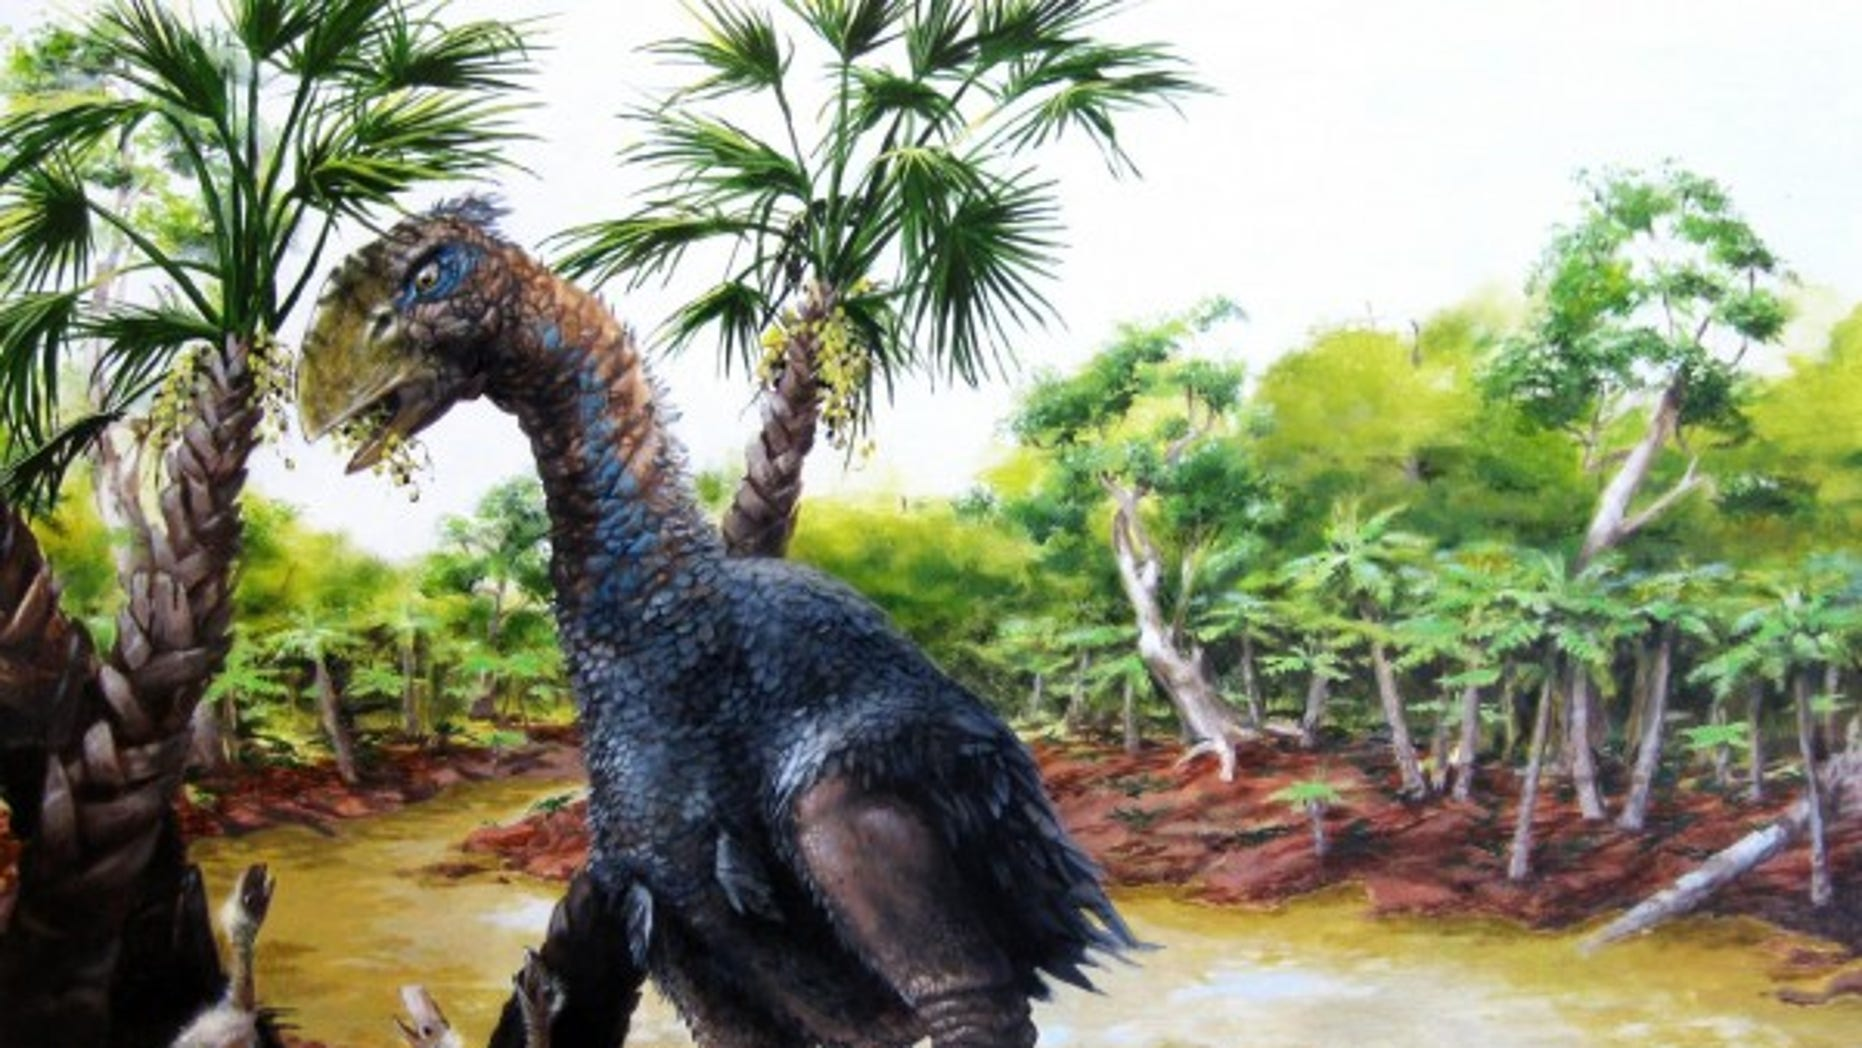 A new study involving CU-Boulder and the Chinese Academy of Sciences has confirmed that a flightless bird weighing several hundred pounds roamed Ellesmere Island in the high Arctic about 50 million years ago. (Illustration by Marlin Peterson)